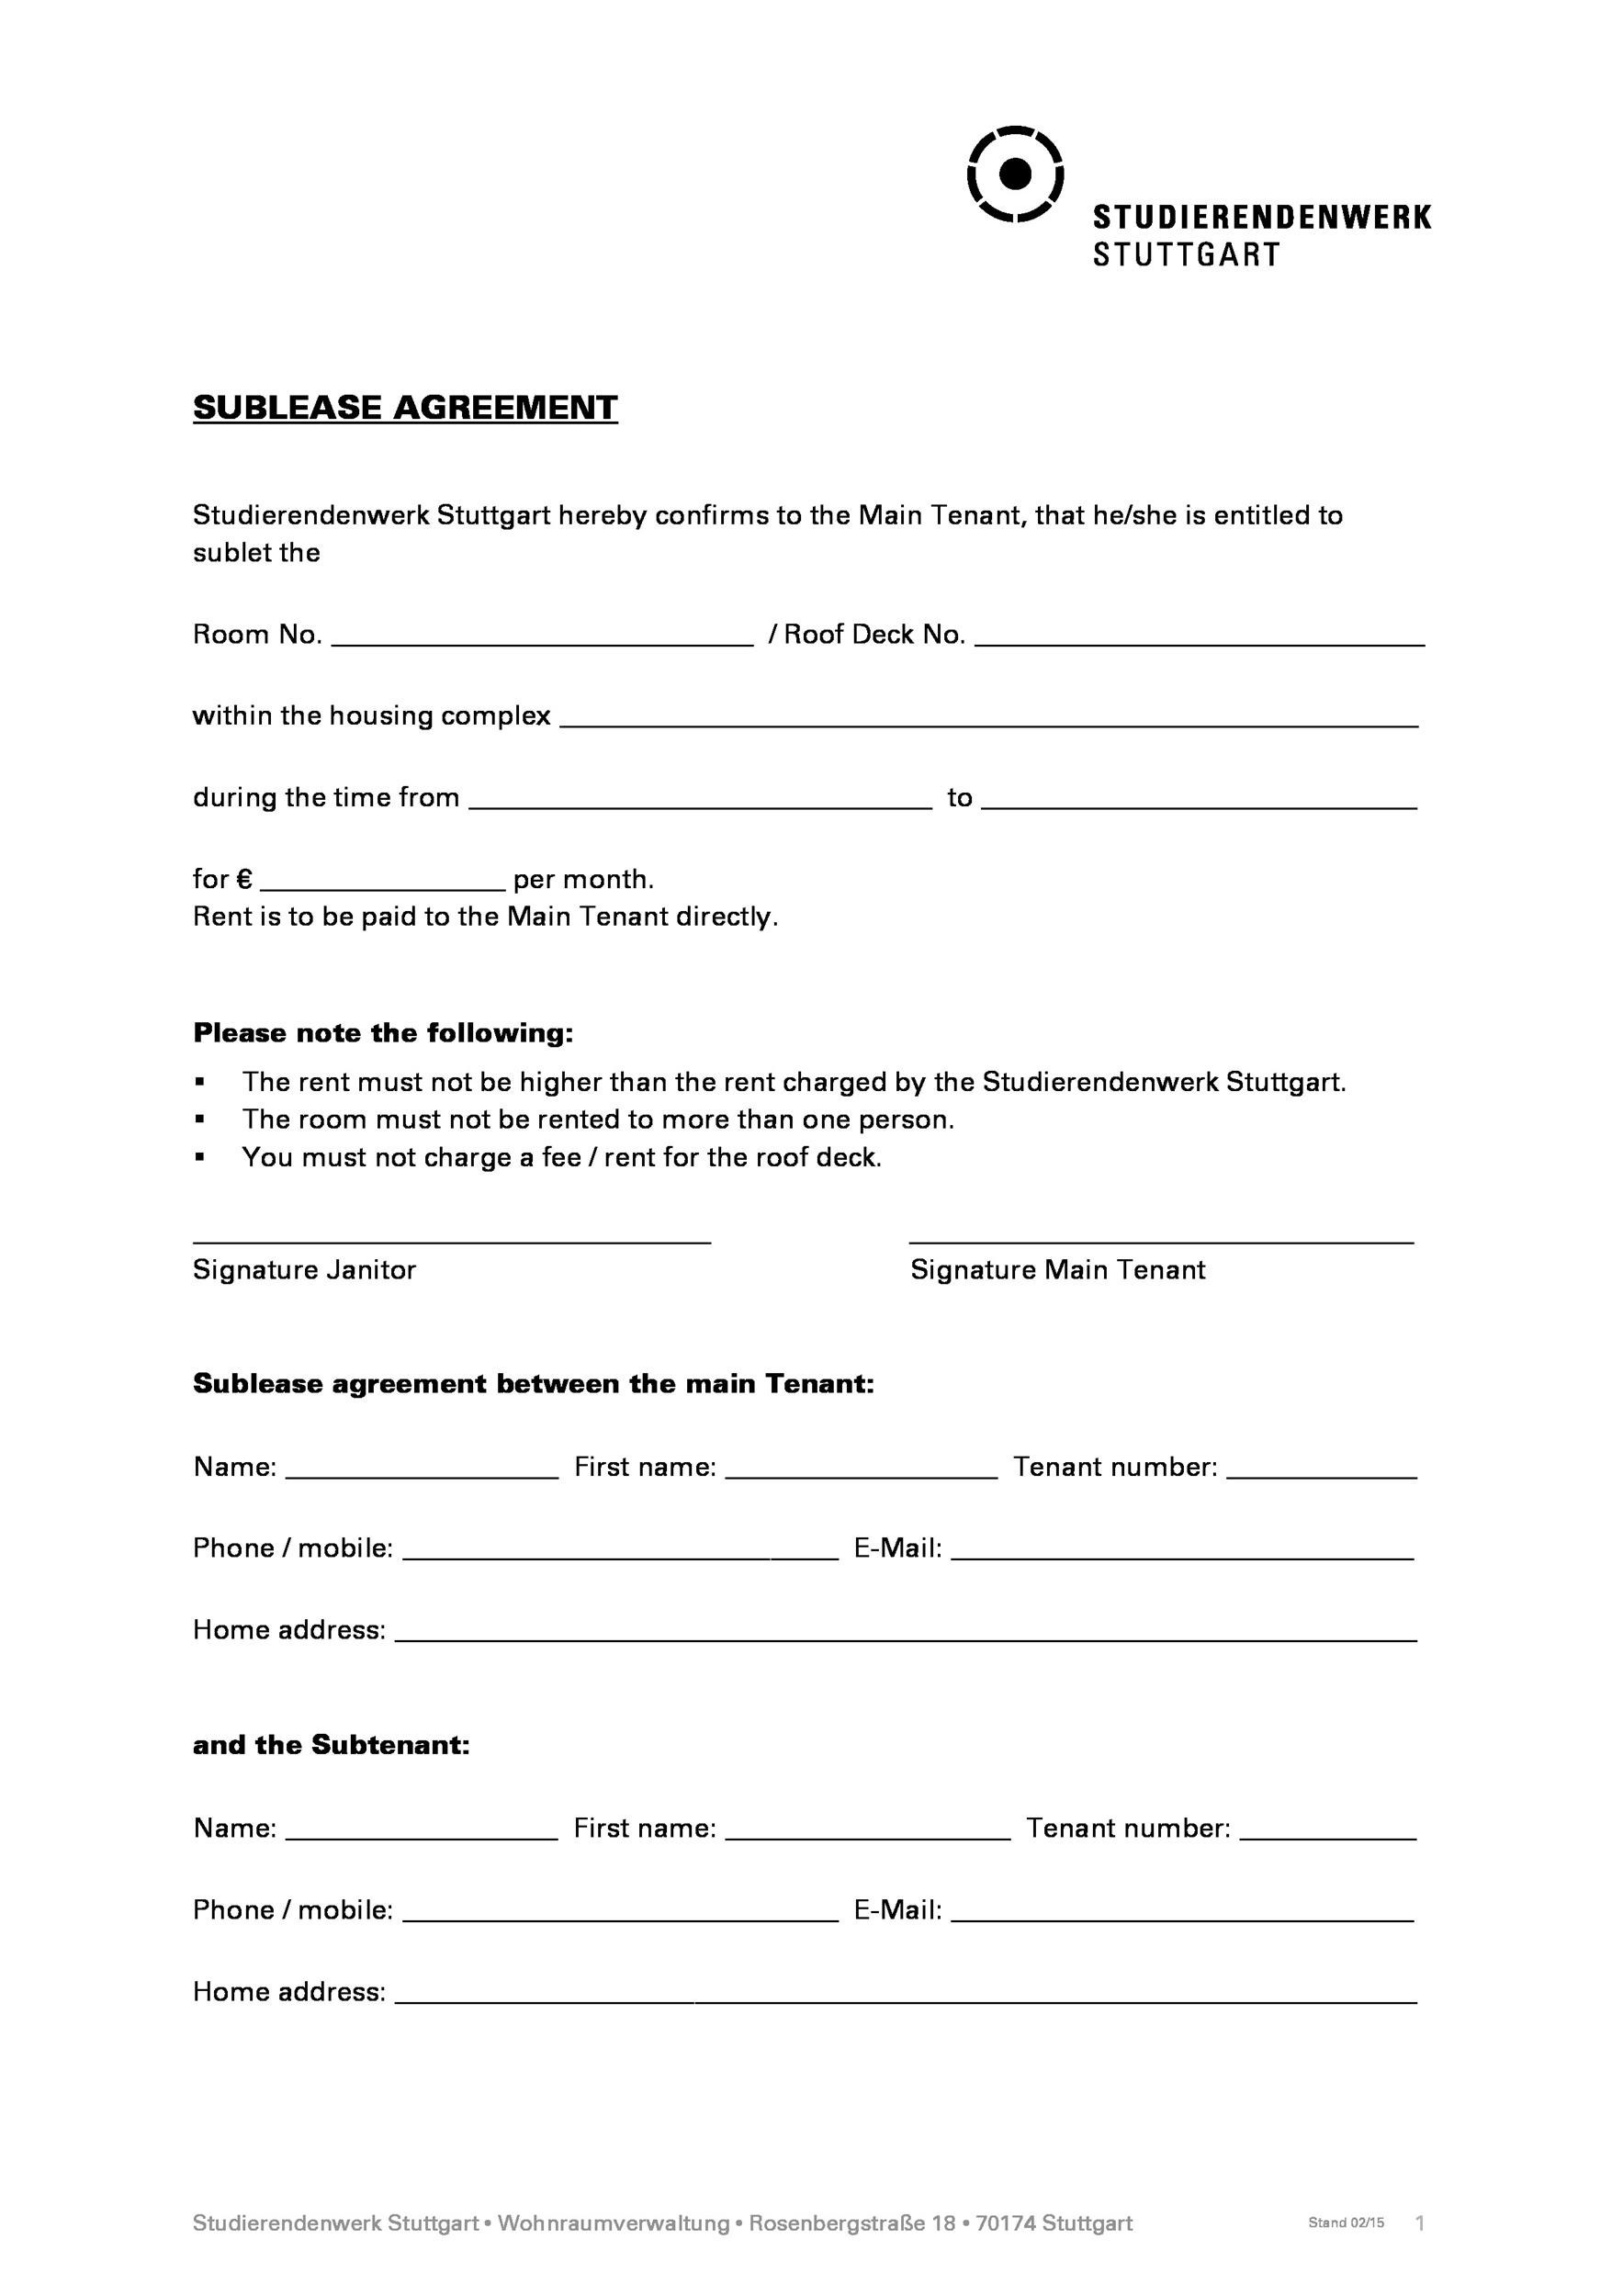 40 Professional Sublease Agreement Templates Forms Template Lab – Agreement Templates